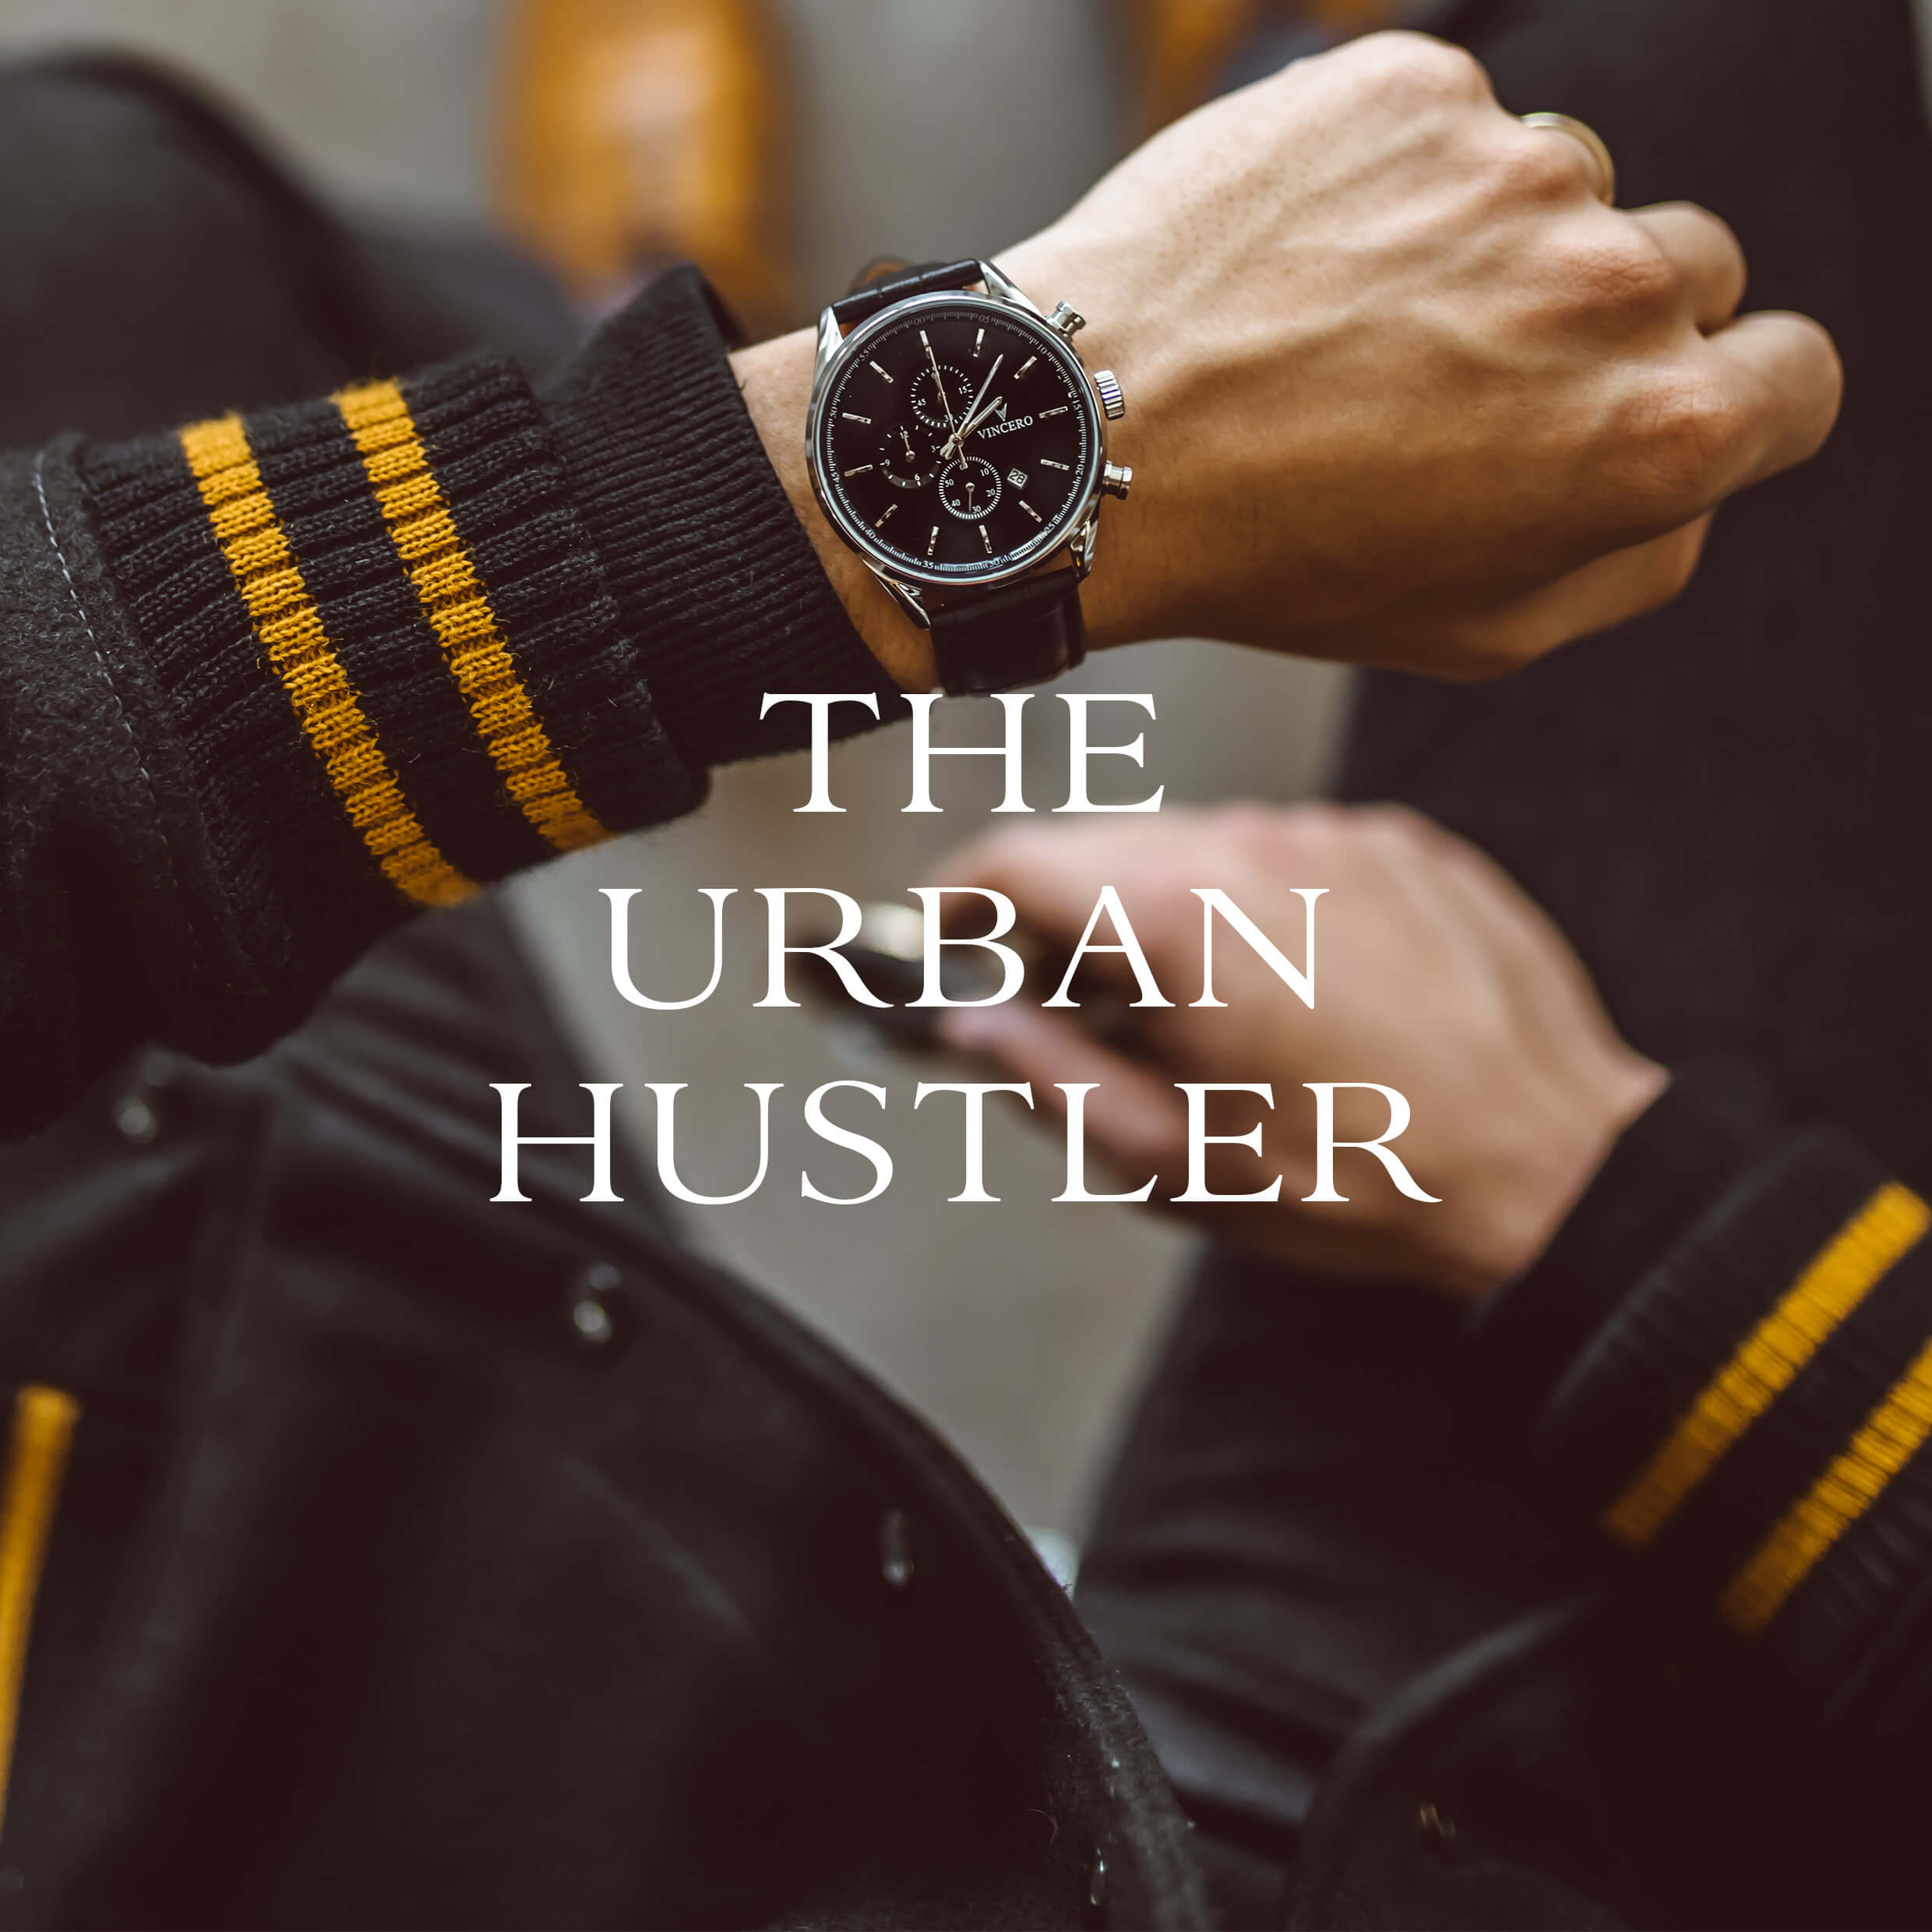 Gifts For The Urban Hustler